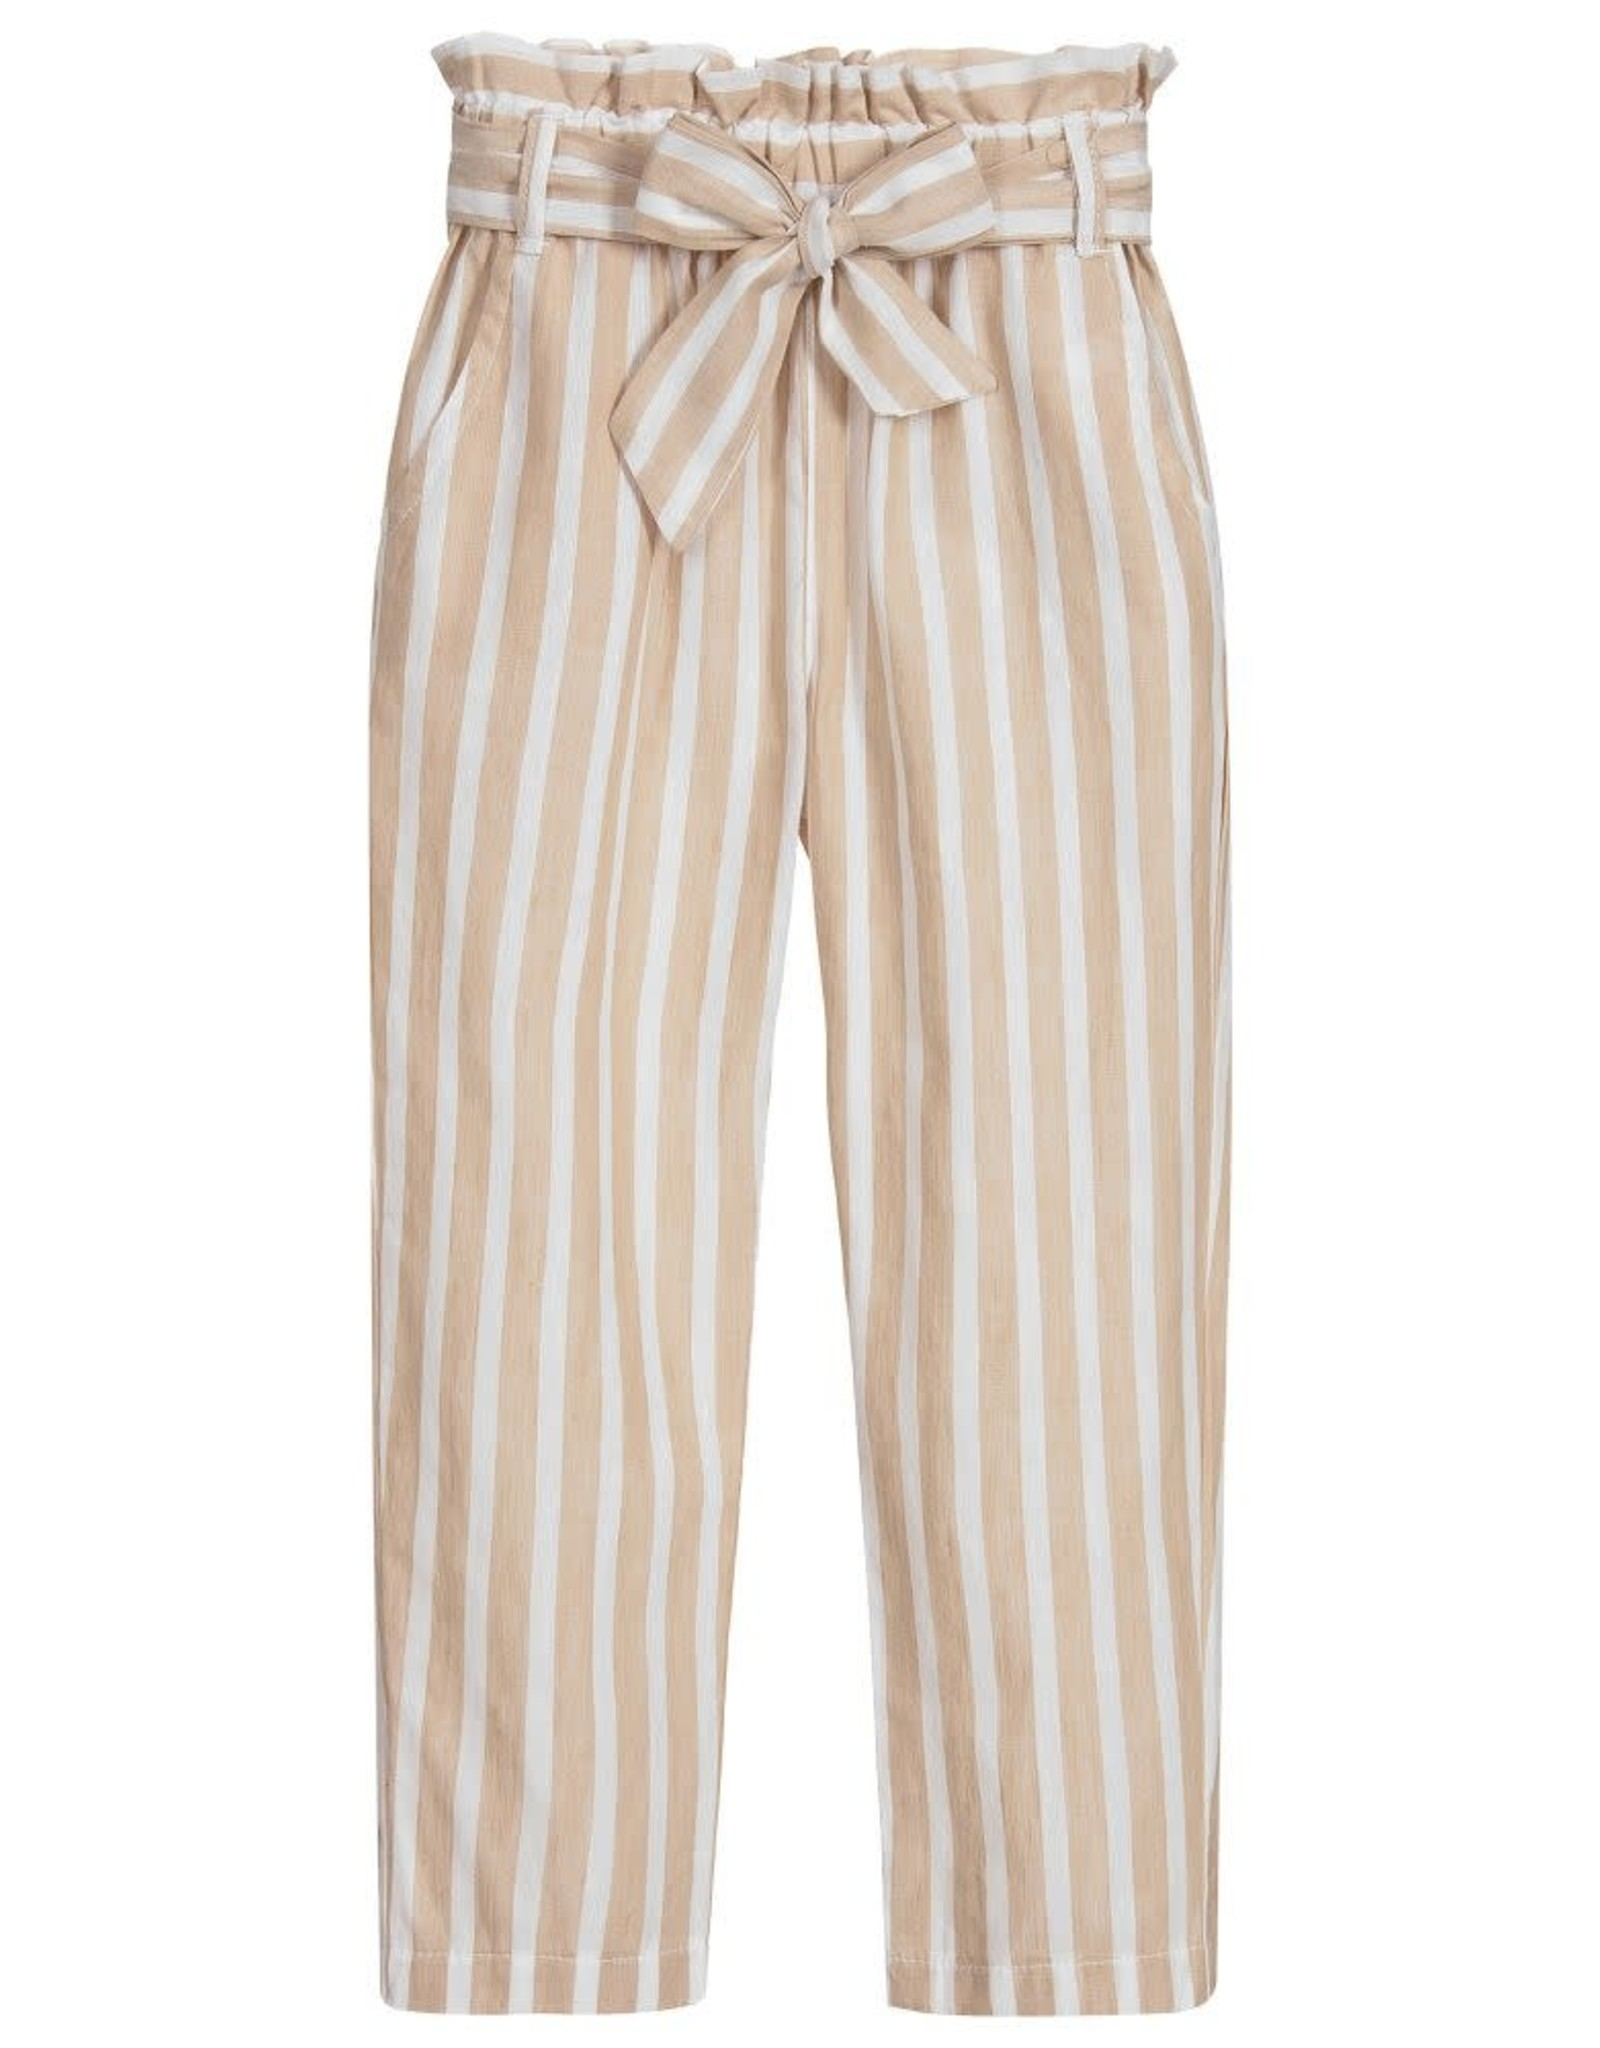 Mayoral Nude Stripped Pants